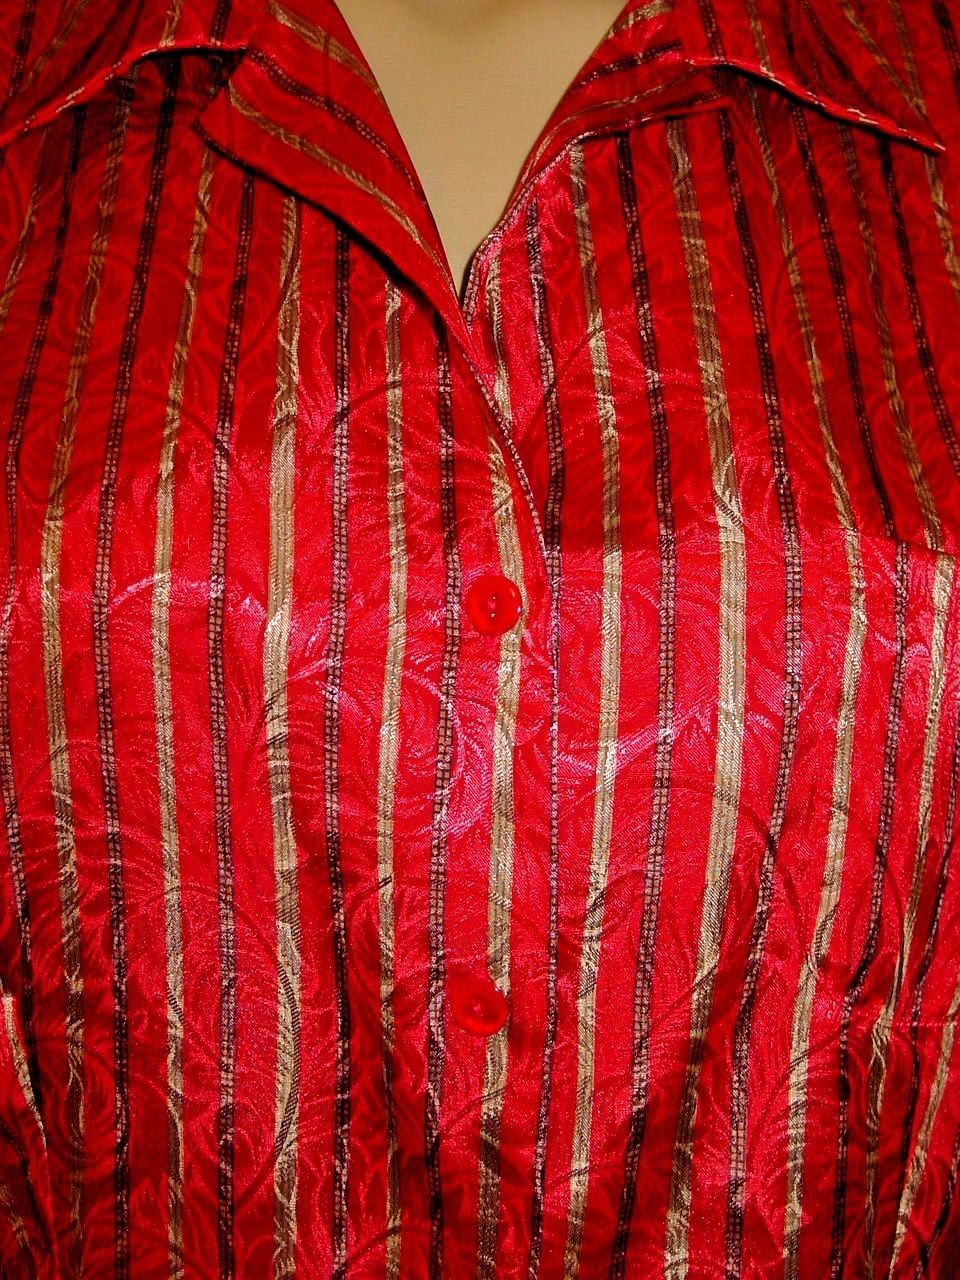 Primary image for Victoria's Secret Vintage Red Gold Stripe Brocade Sleep Top Shirt Satin Sissy-M